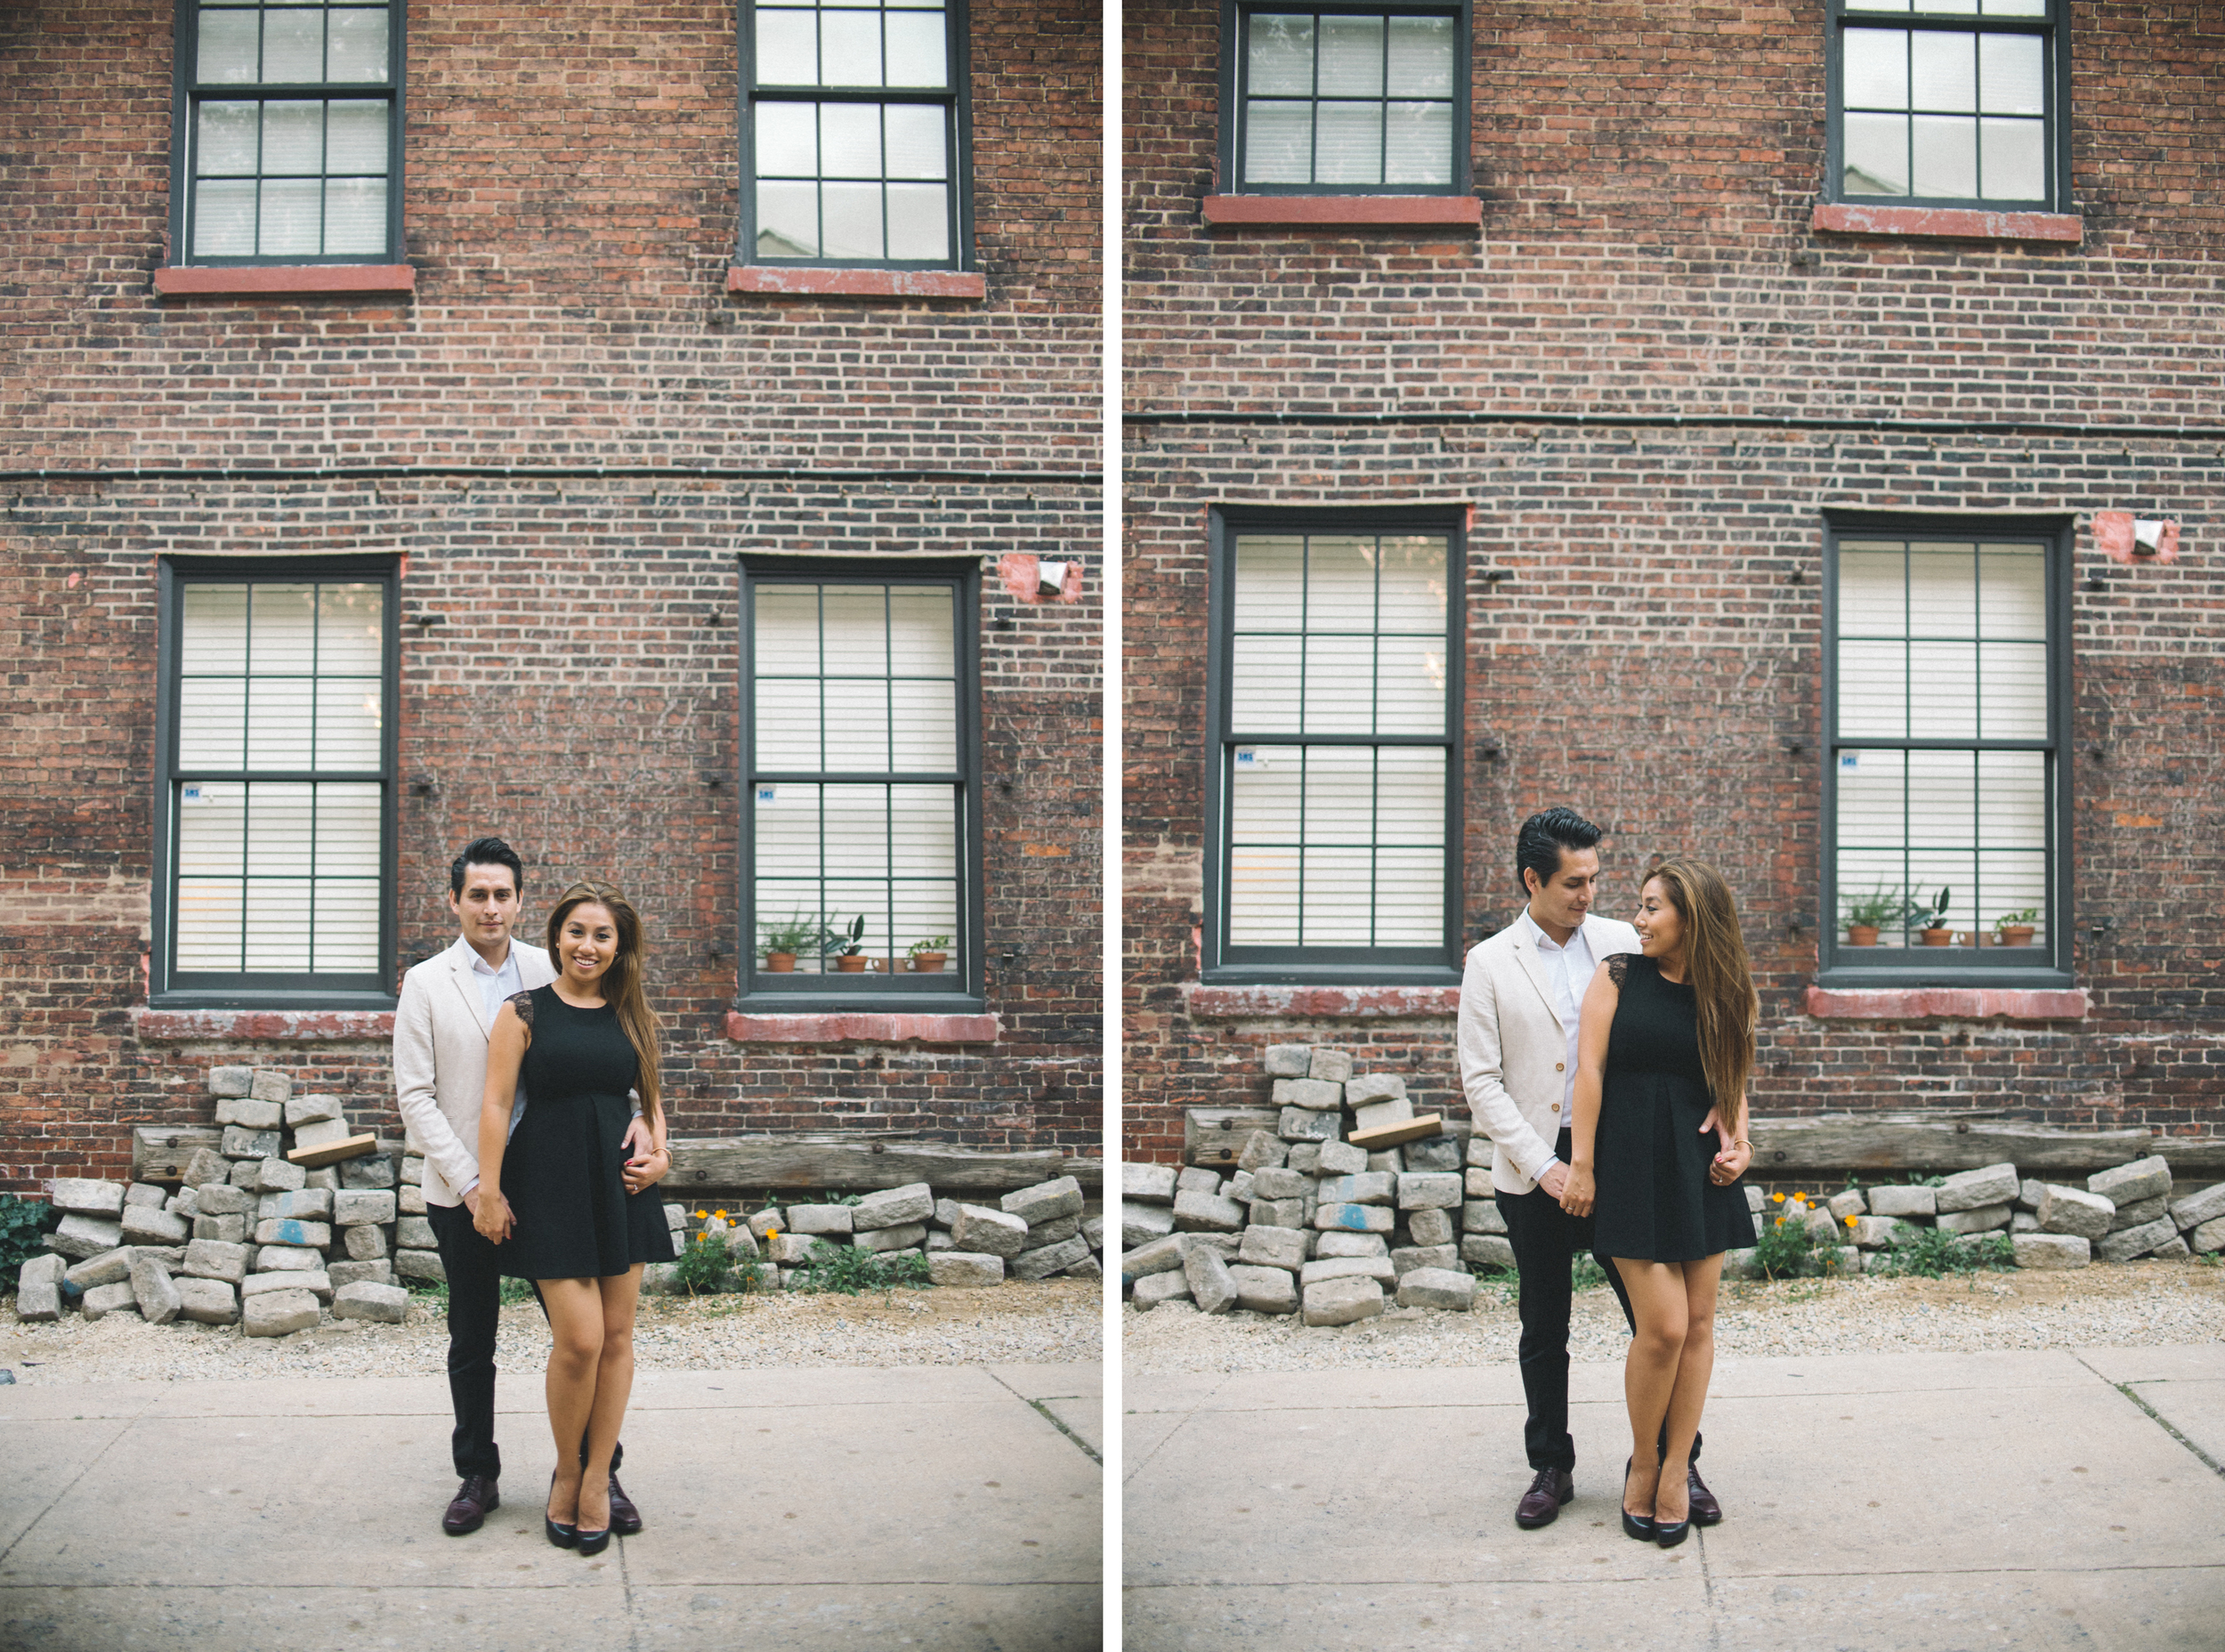 Old-City-Philadelphia-Engagement-Peaberry-Photography-Pennsylvania-Wedding-Photographer-009.jpg